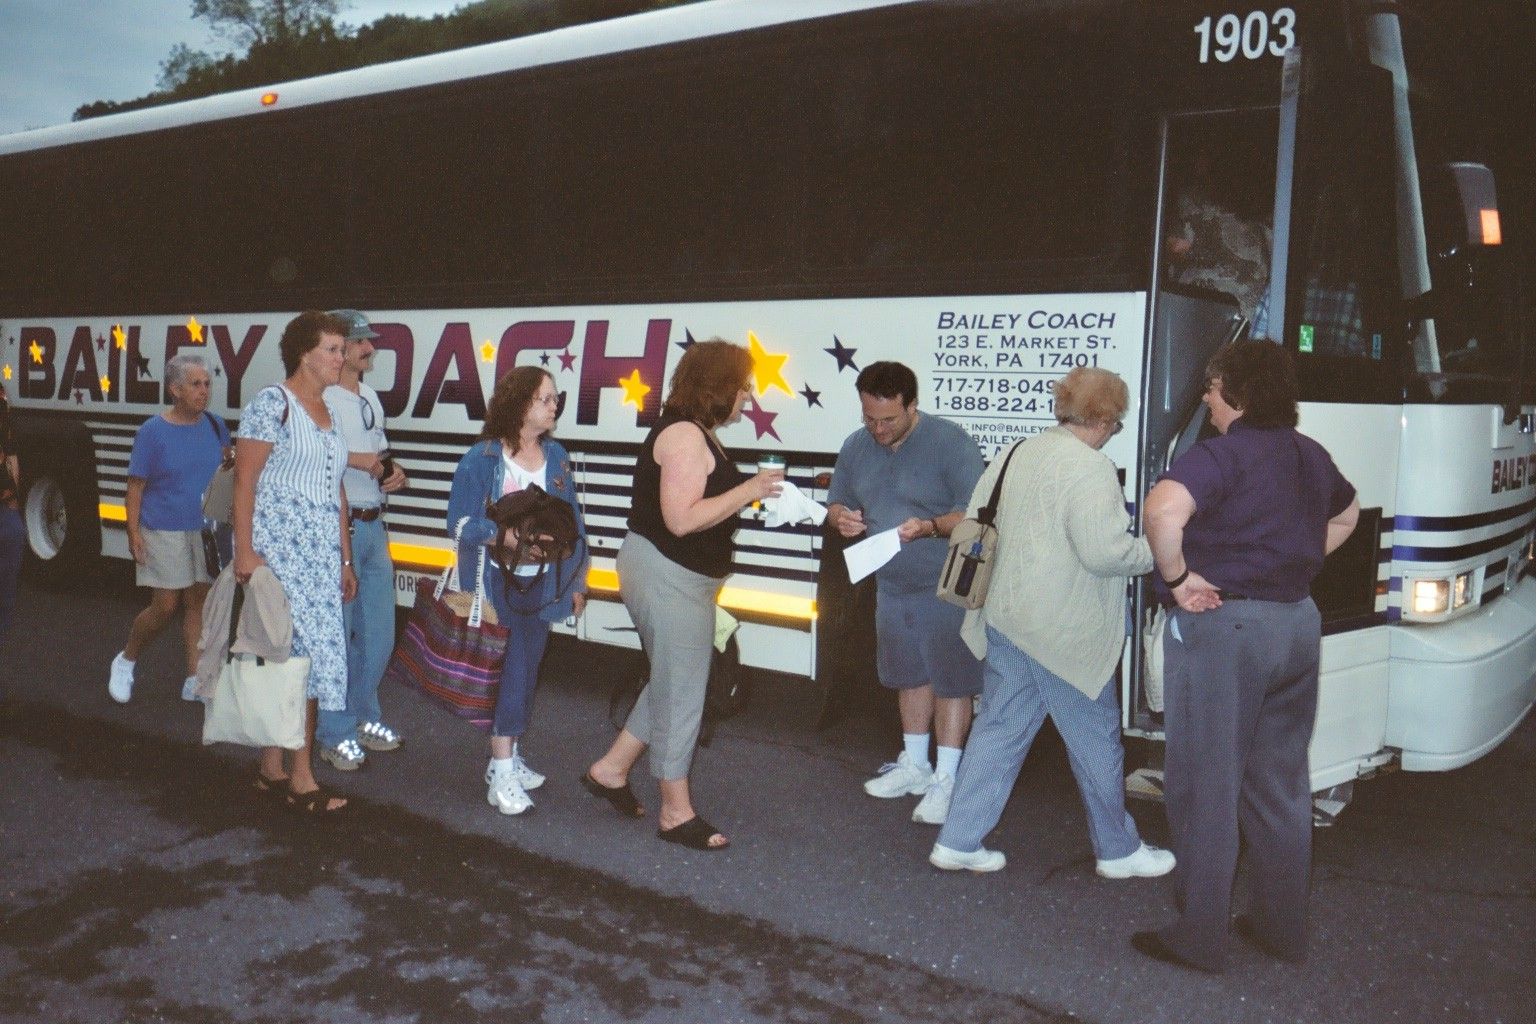 Boarding the bus for a Washington, DC trip that included bookstores in Georgetown and Dupont Circle.